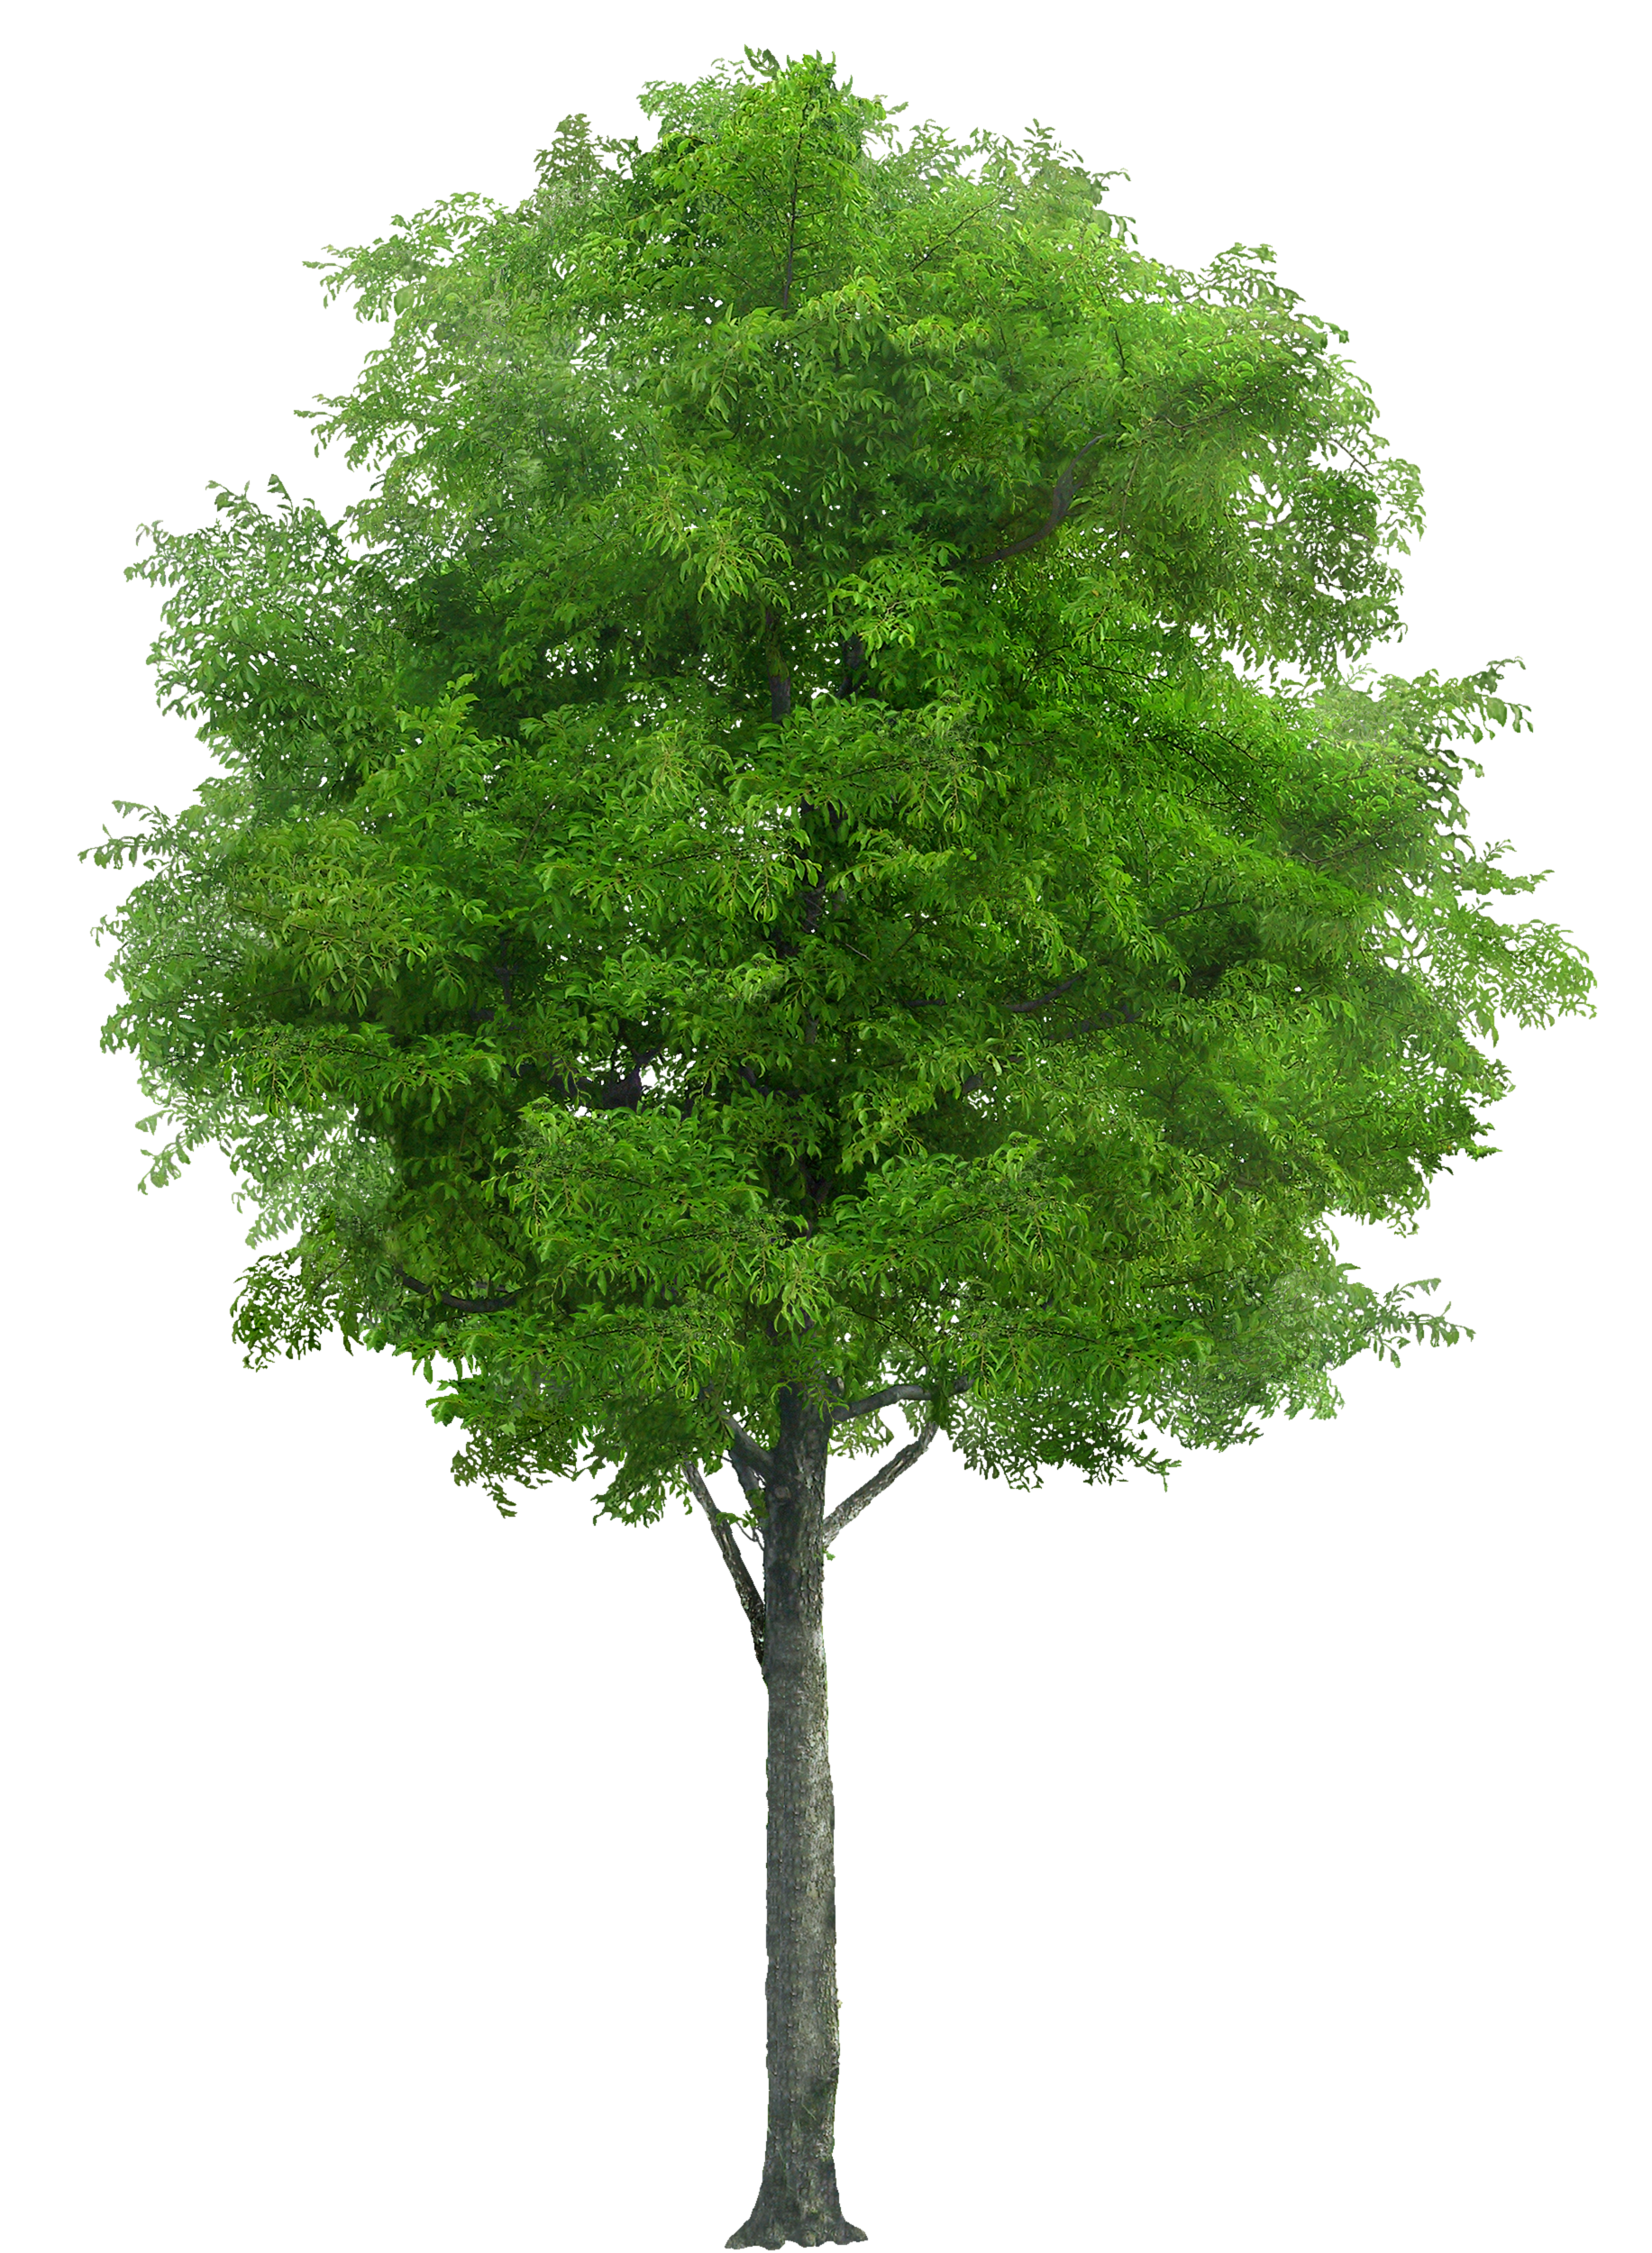 tree png image - Willow Tree PNG HD